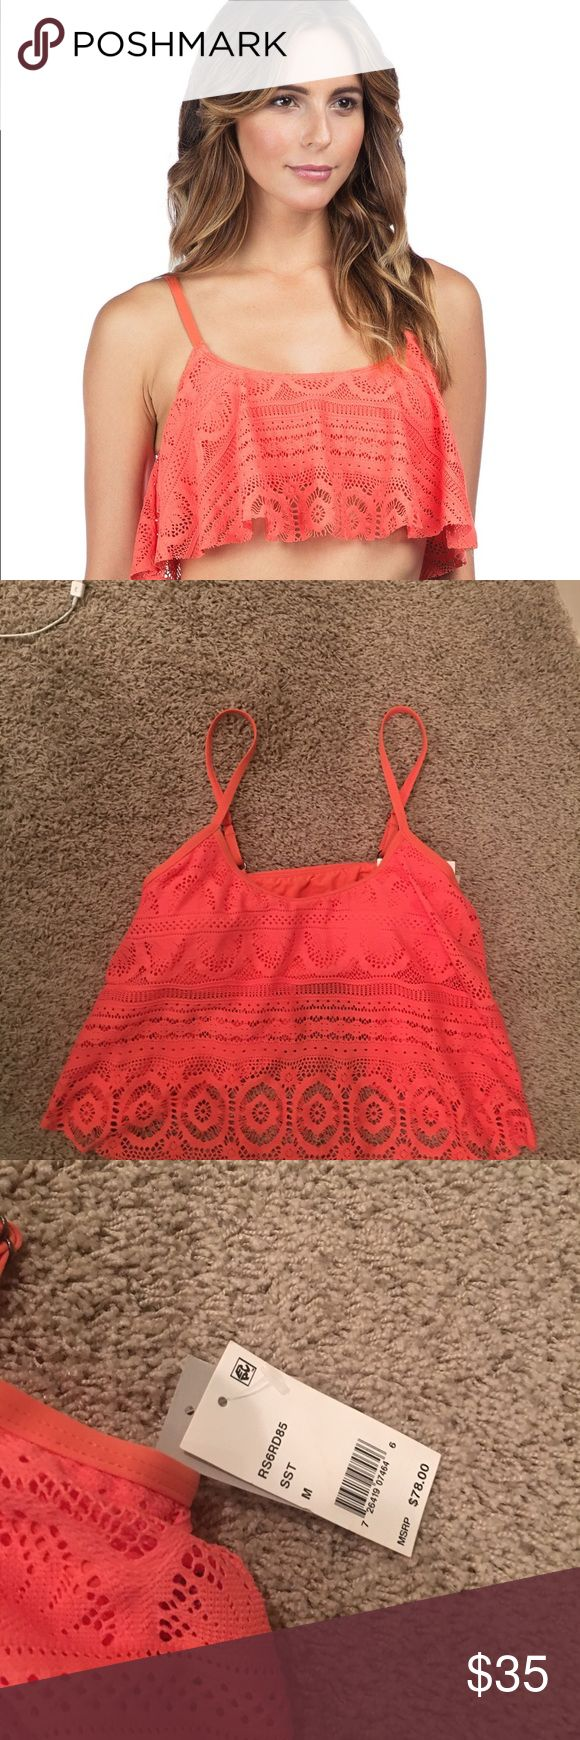 NWT Kenneth Cole Reaction Swimsuit Top Medium NWT Kenneth Cole Reaction Coral Swimsuit Top Medium purchased from Dillards!! adorable!! Kenneth Cole Reaction Swim